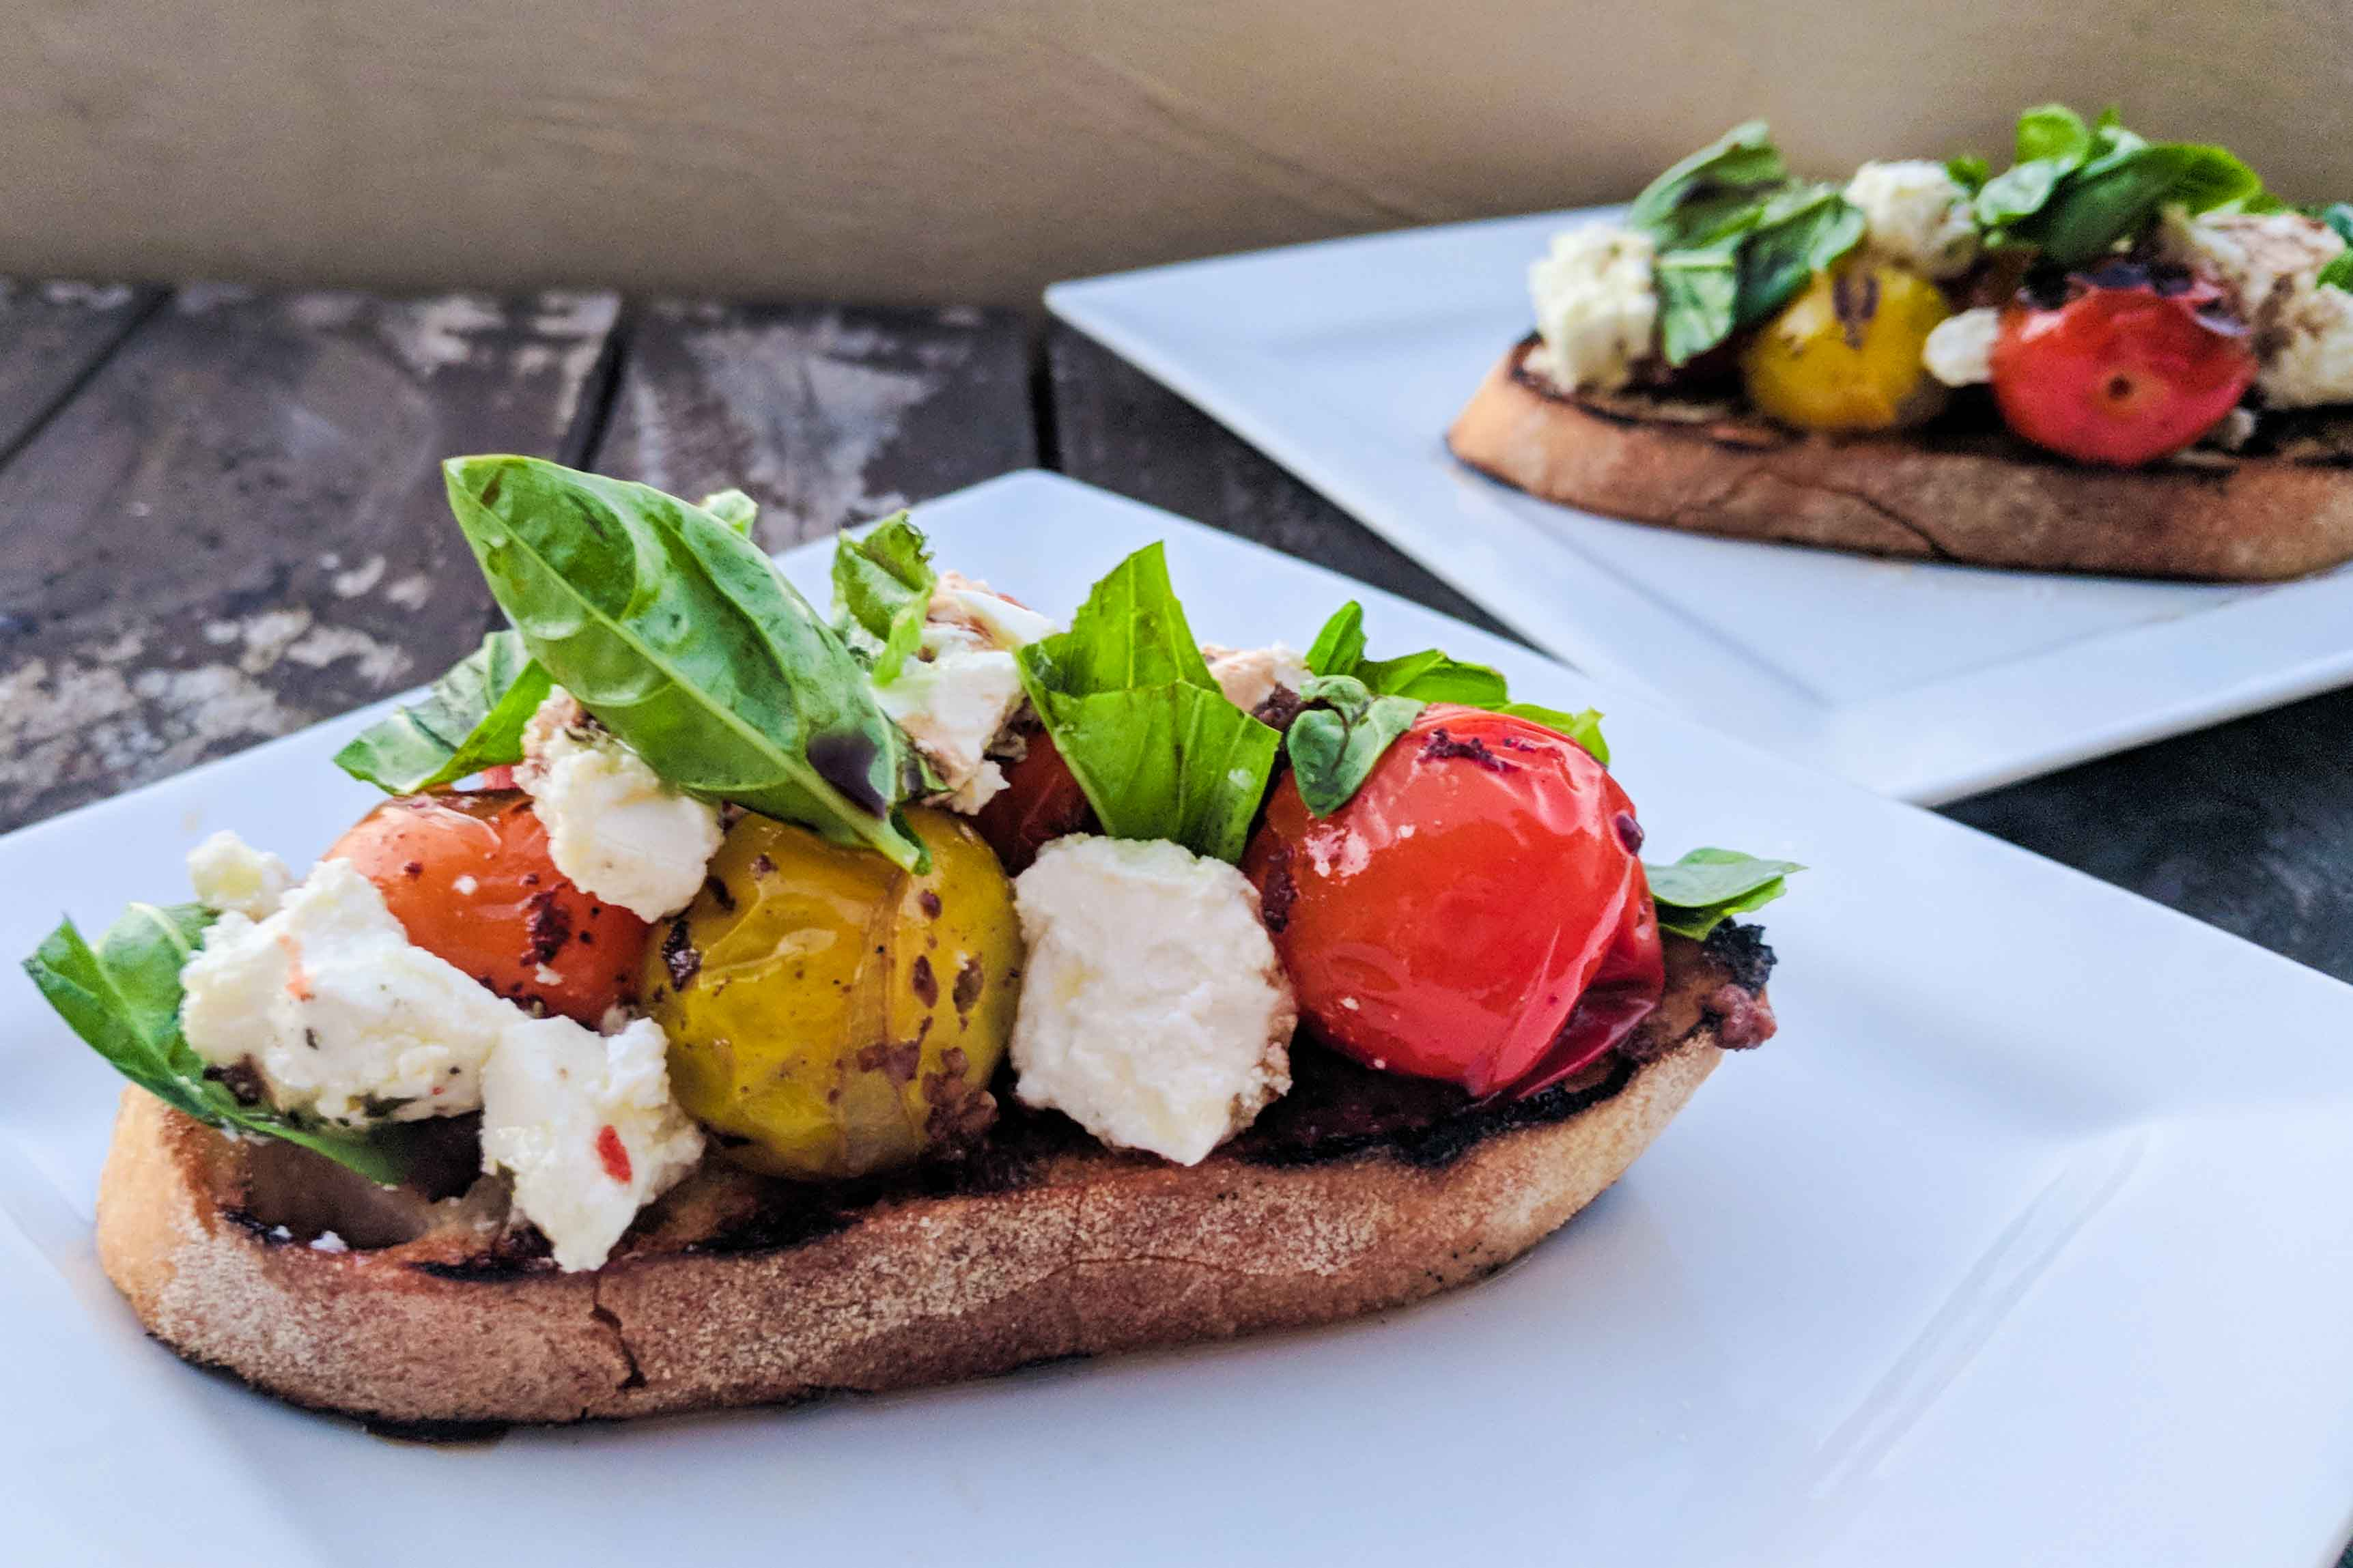 Barbecued heirloom tomato bruschetta with feta and basil